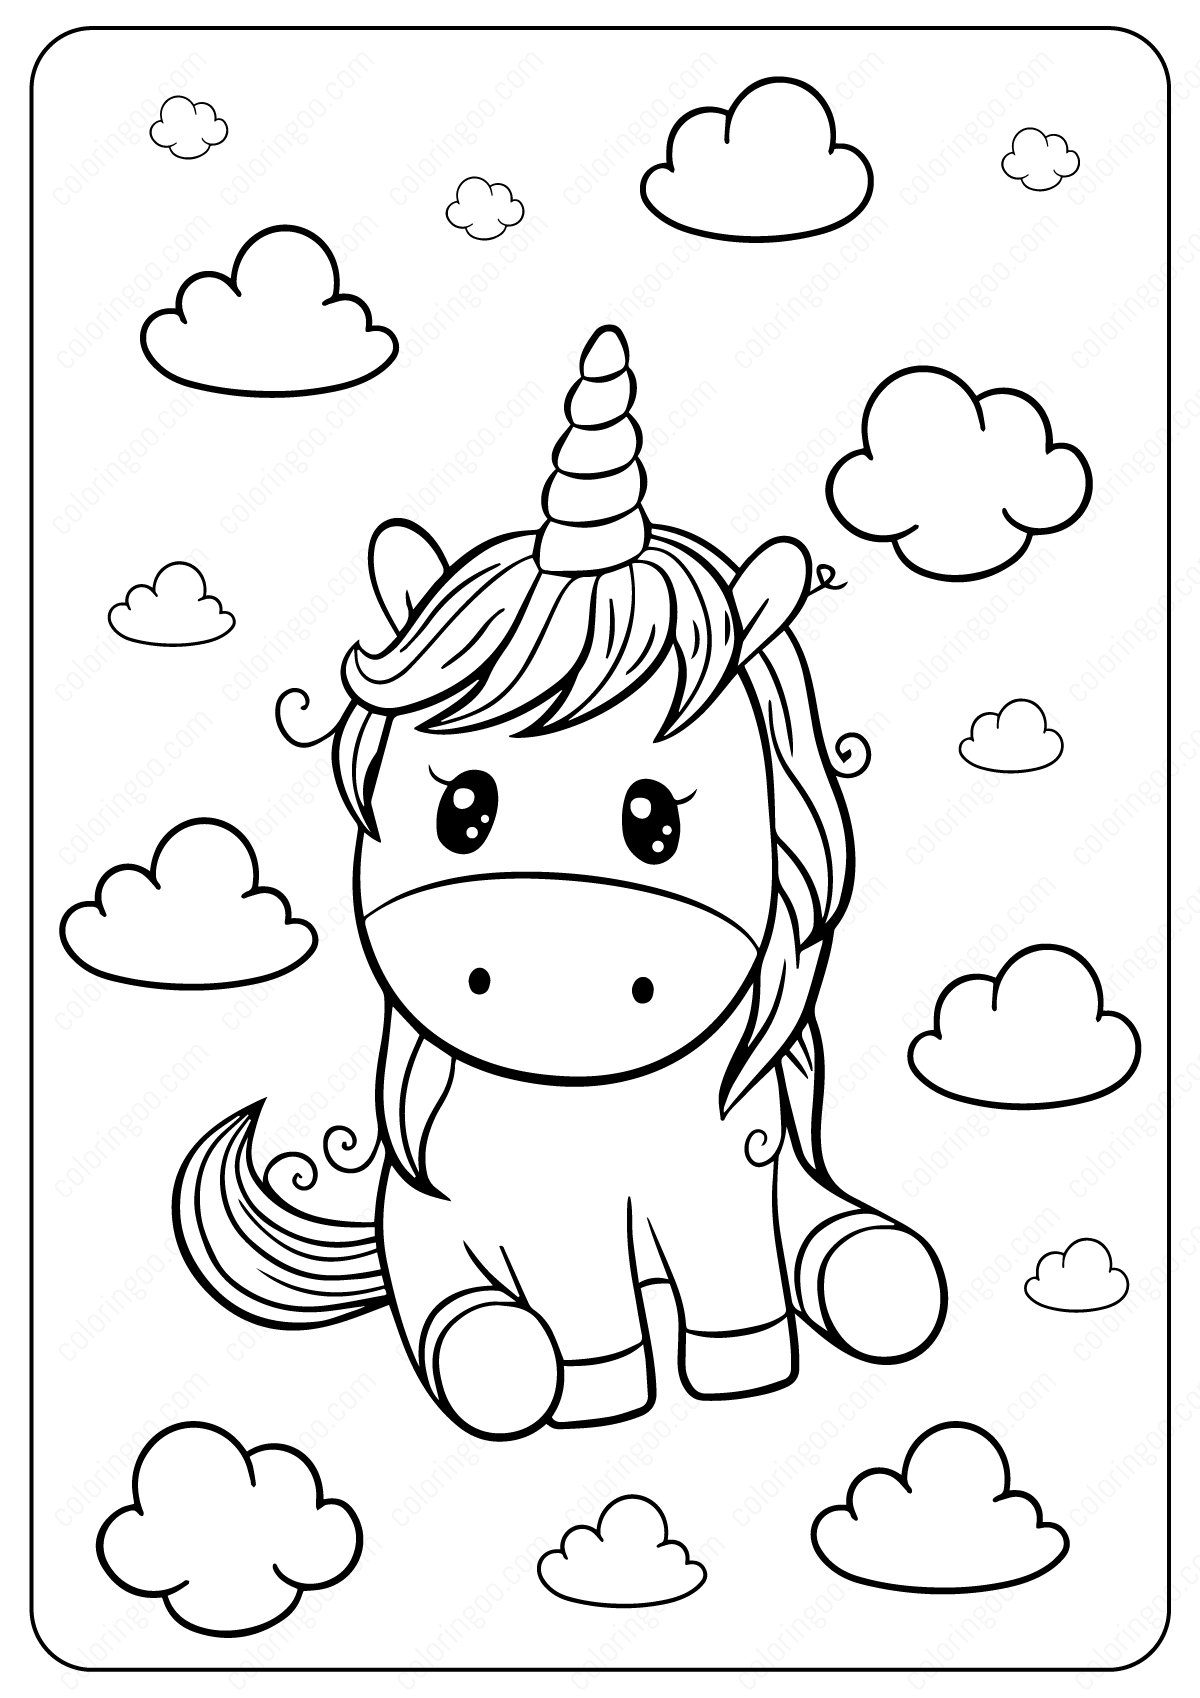 Cute Unicorn Coloring Page In 2021 Bunny Coloring Pages Unicorn Coloring Pages Coloring Pages